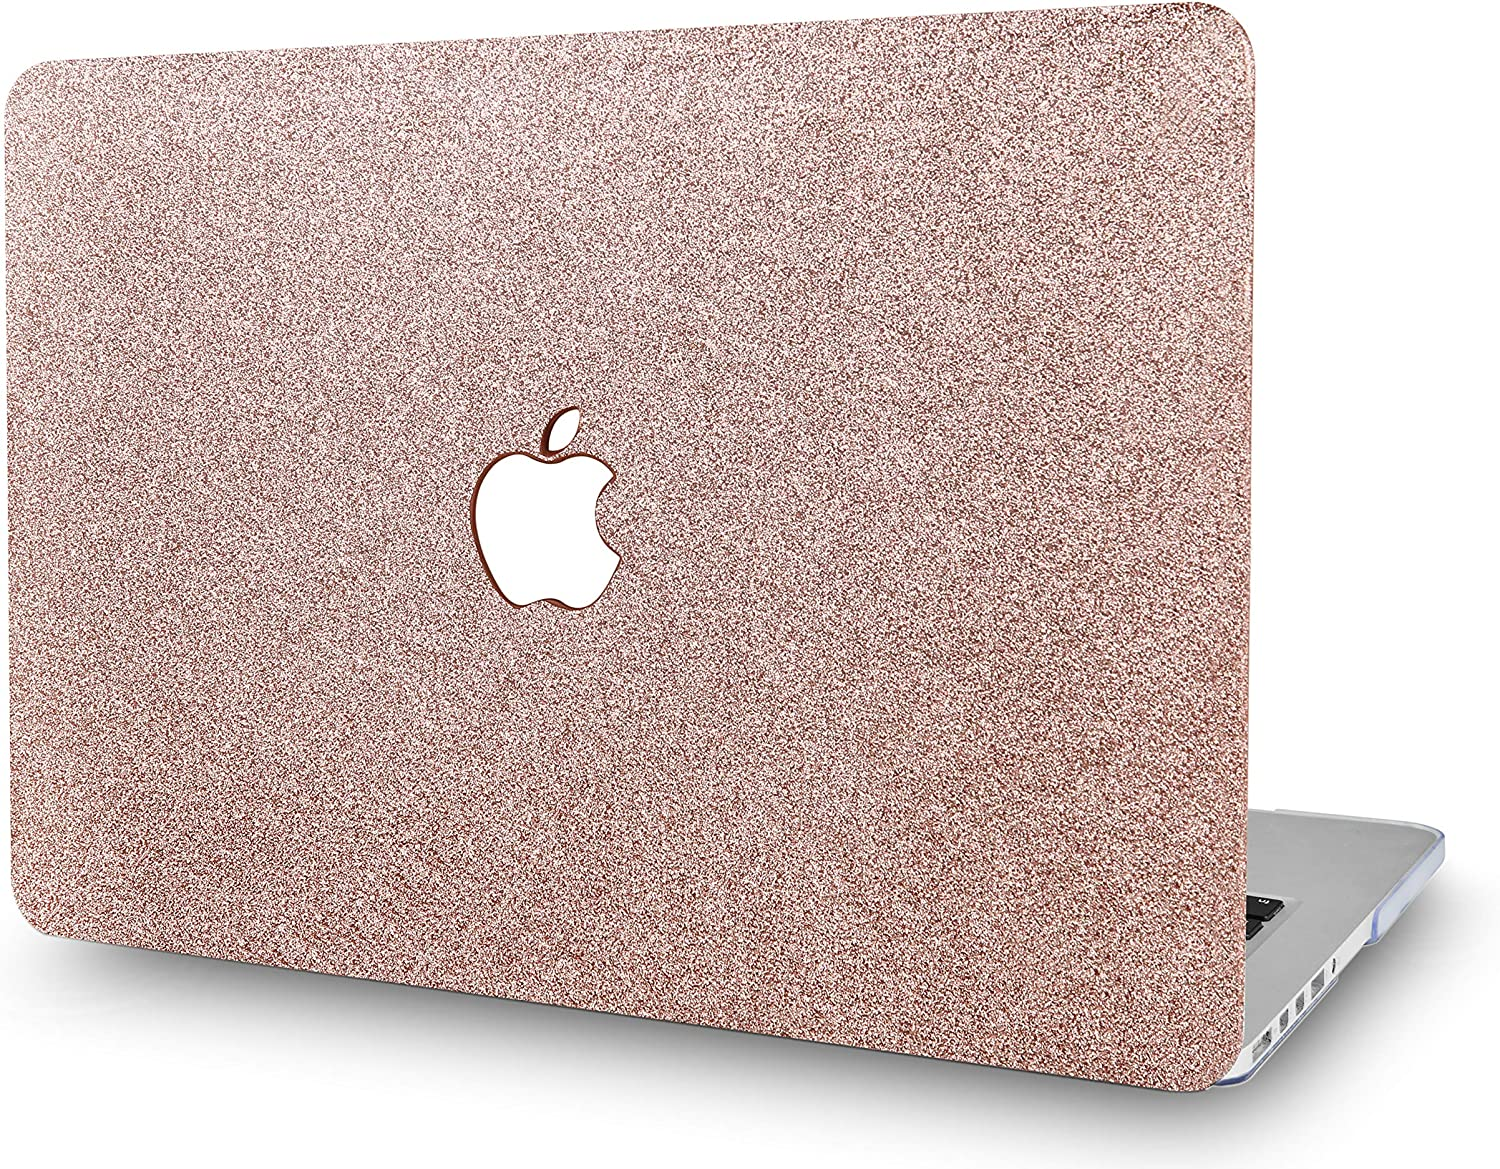 "KECC Laptop Case for Old MacBook Pro 13"" Retina (-2015) Plastic Hard Shell Cover A1502 / A1425 (Rose Gold Sparkling)"